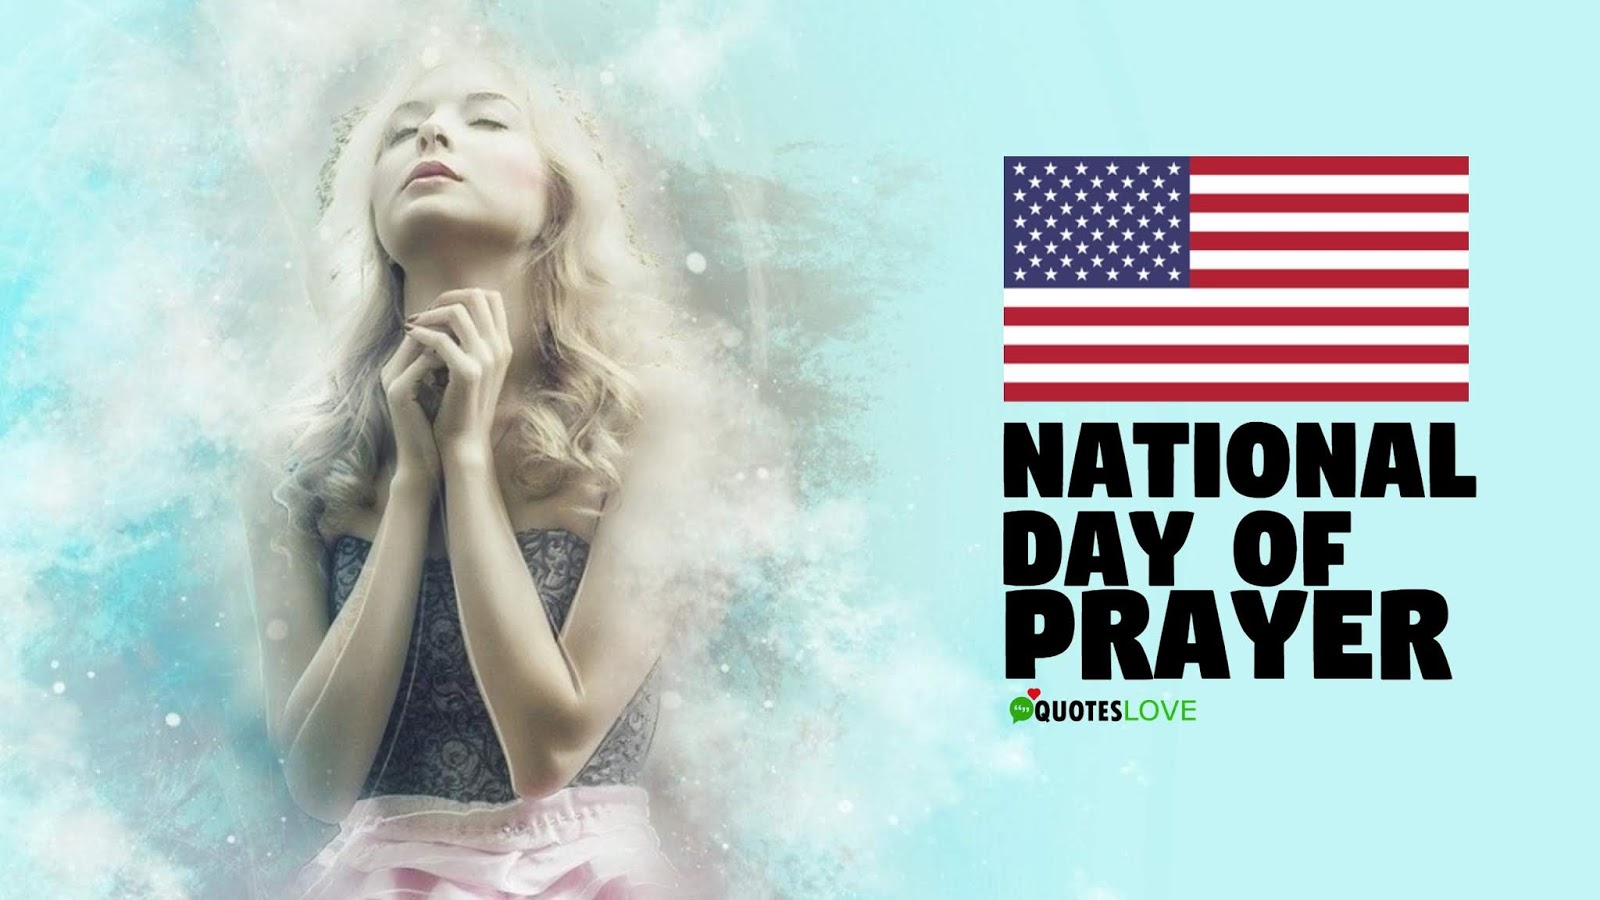 National Day of Prayer Quotes, Theme, History, Images